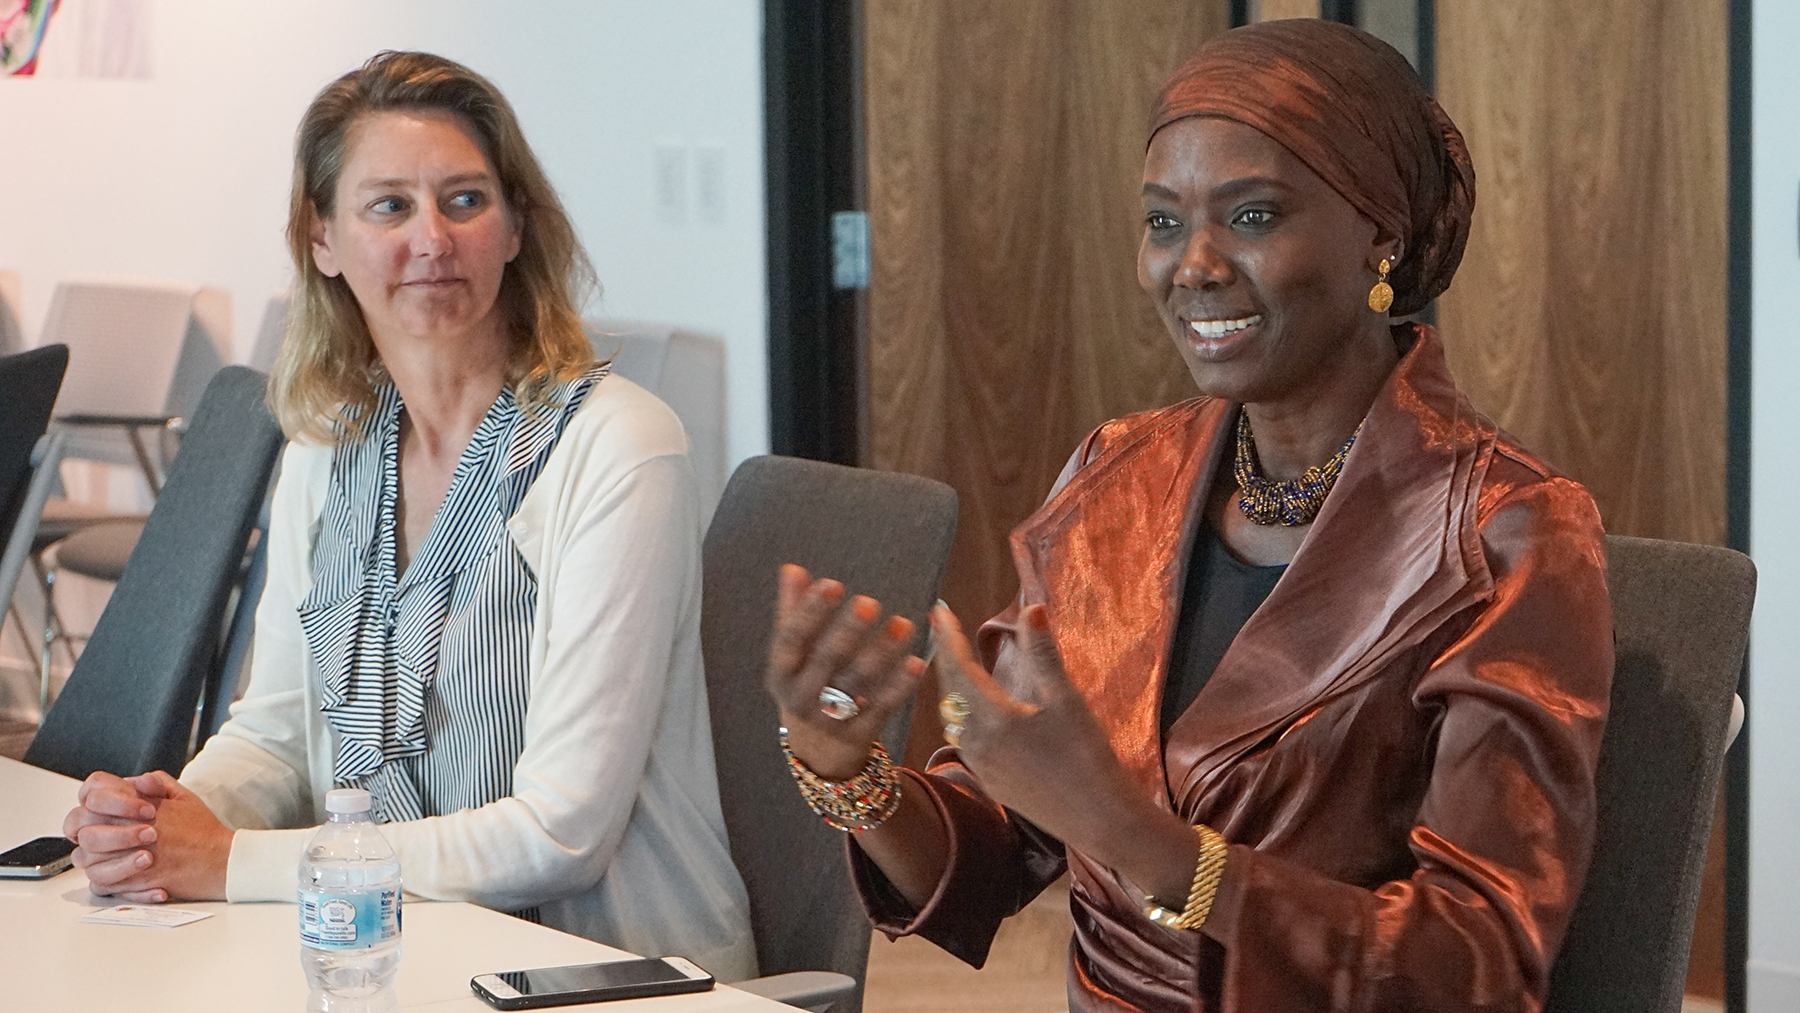 Honorary Consul of Senegal Mame Toucouleur Mbaye meets with leadership at Direct Relief headquarters on Monday, Oct. 21, 2019. (Lara Cooper/Direct Relief)